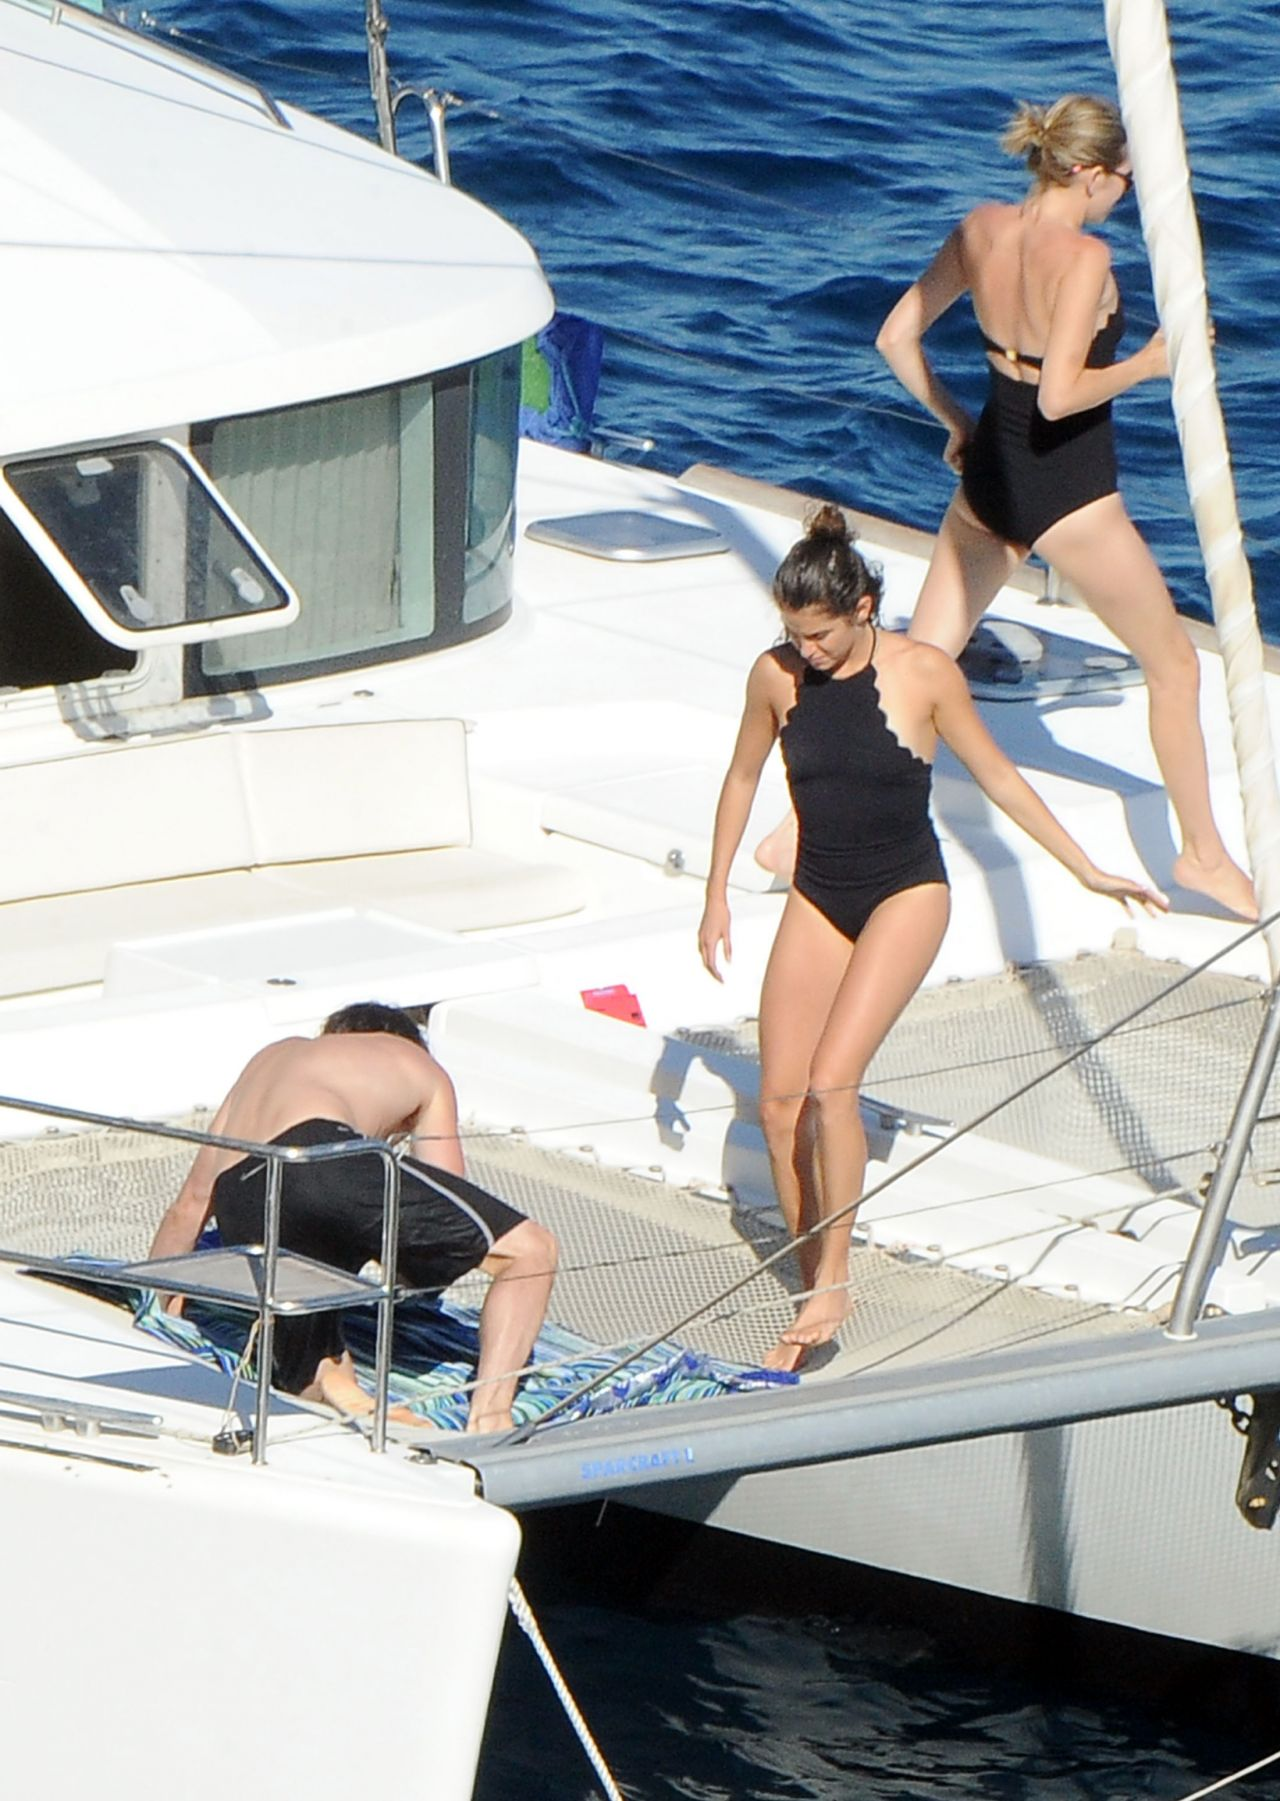 Nikki Reed In A One Piece Bathing Suit On A Boat In Italy